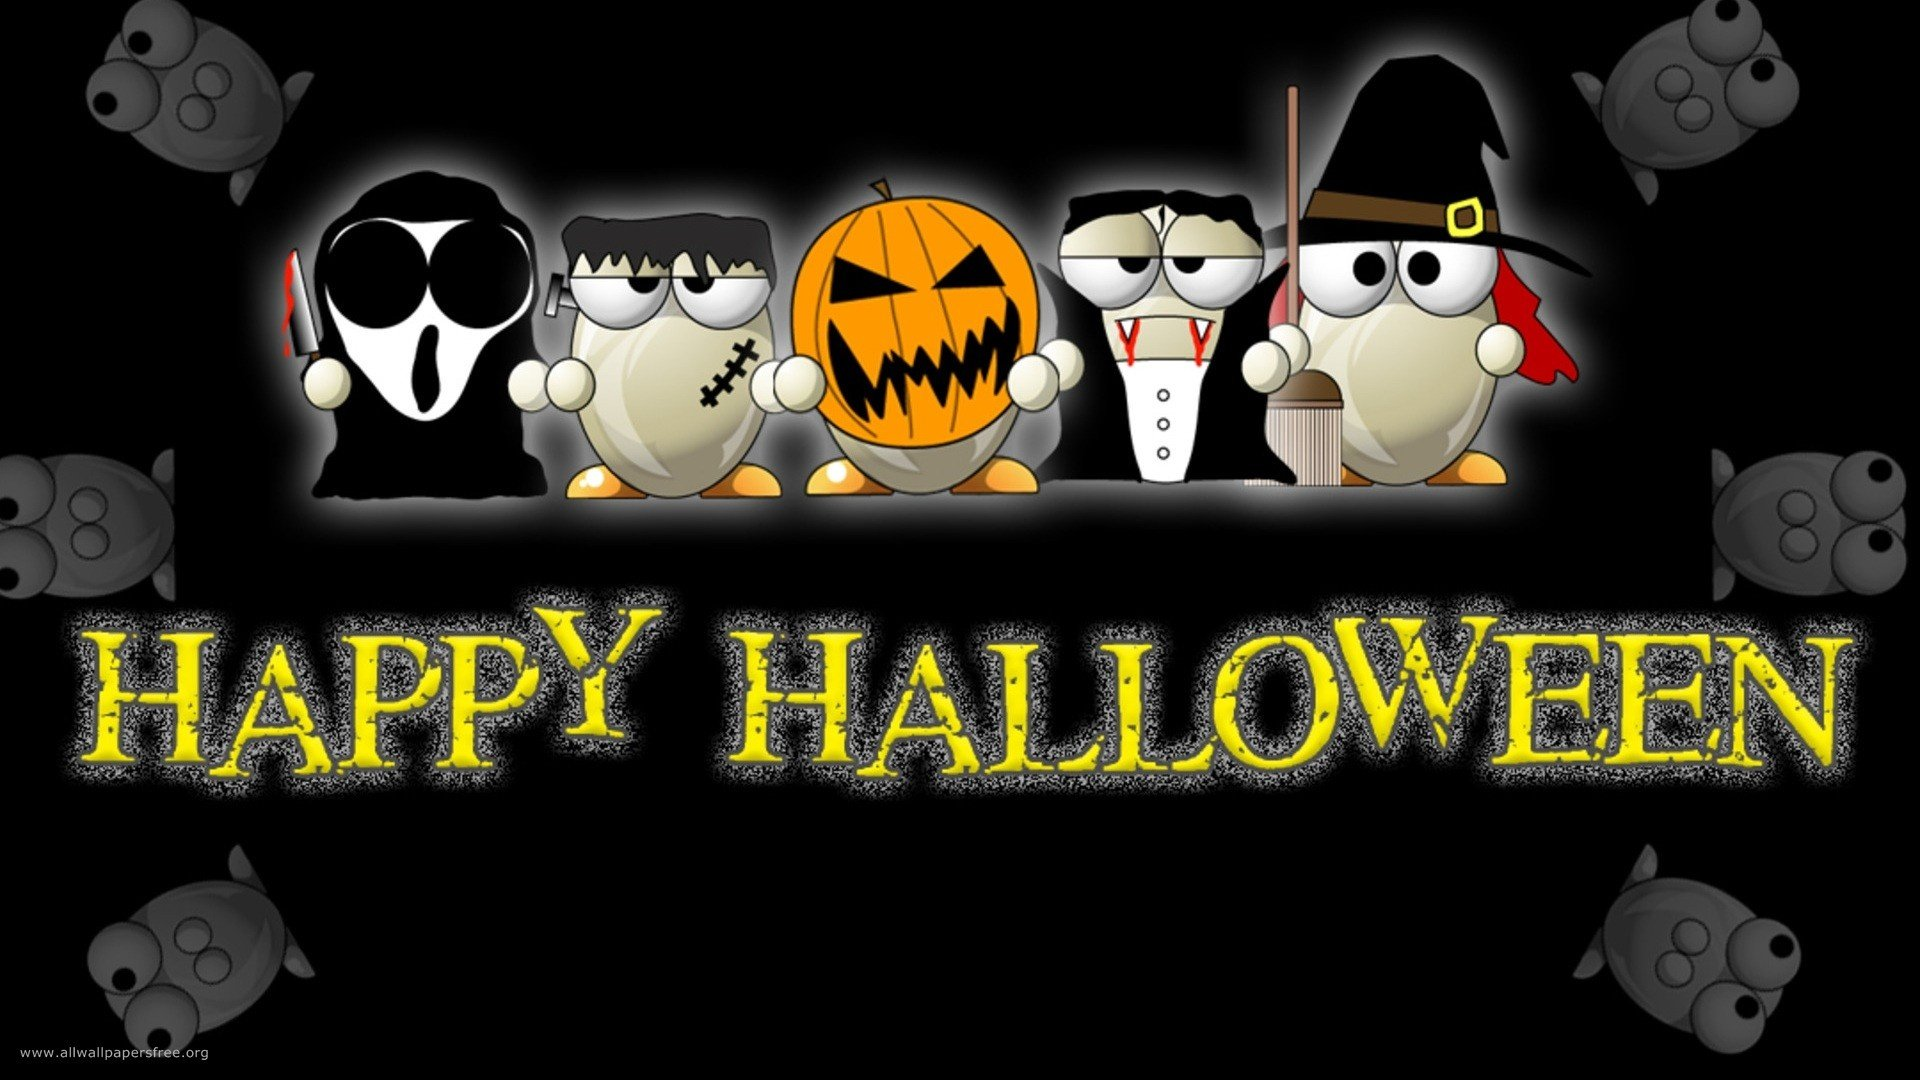 Free Halloween 3D Desktop Wallpaper - WallpaperSafari